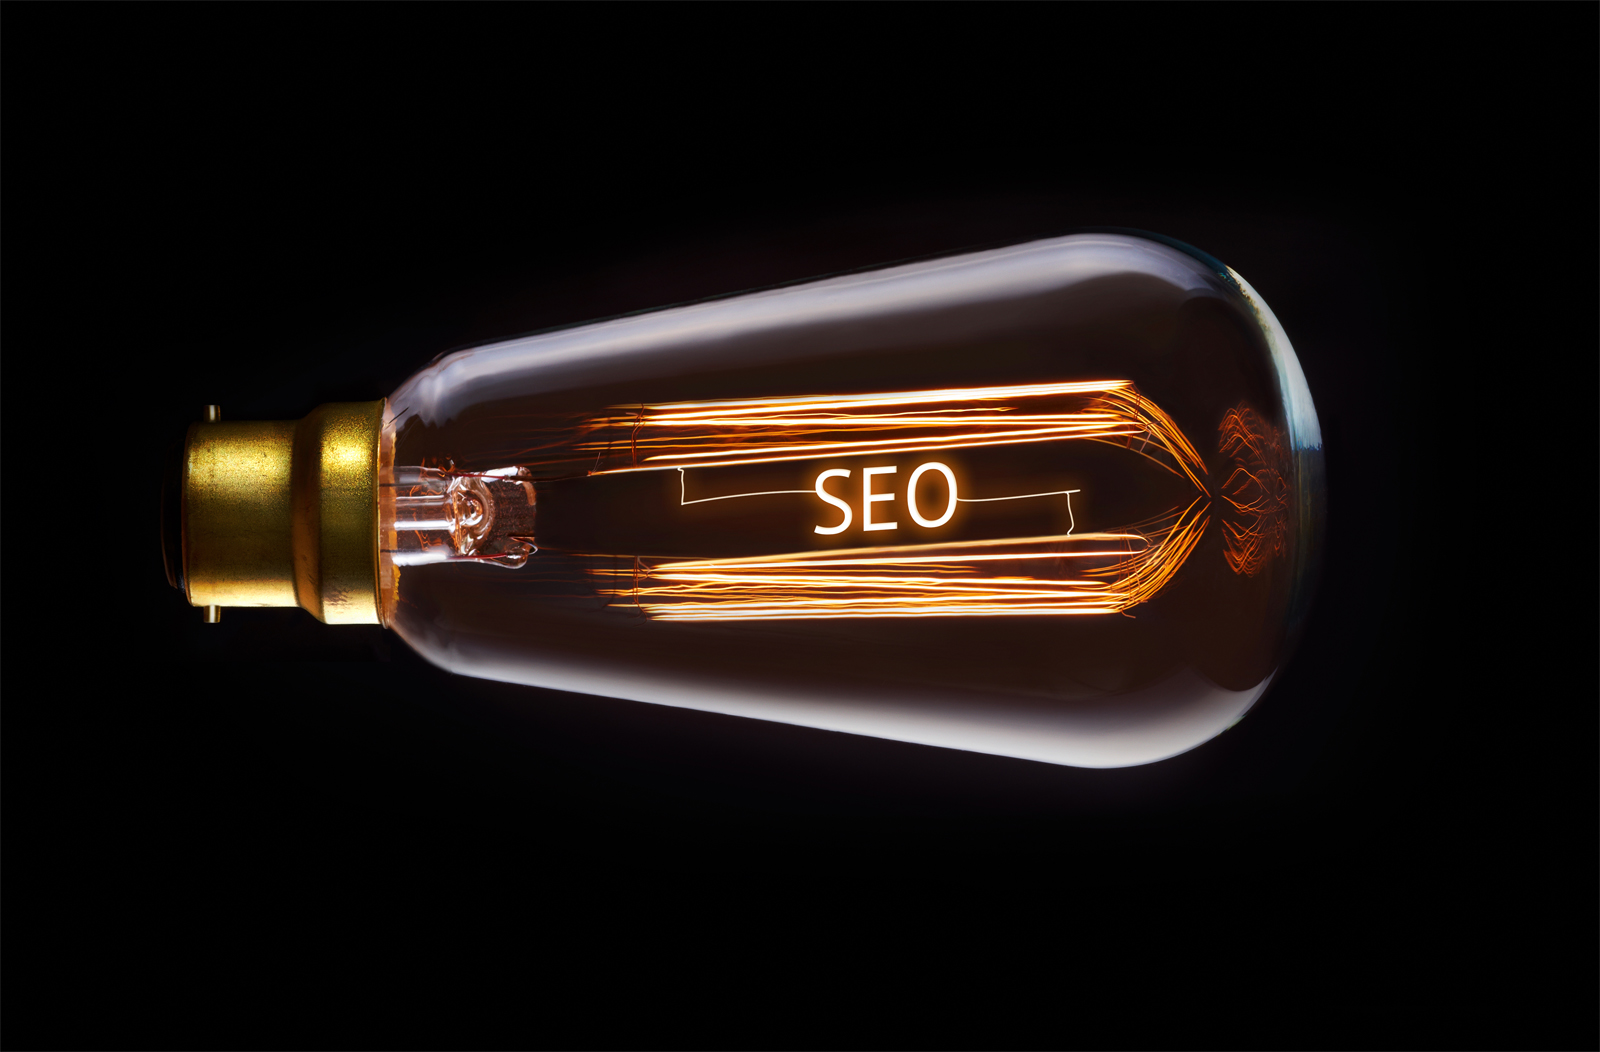 To SEO or not to SEO